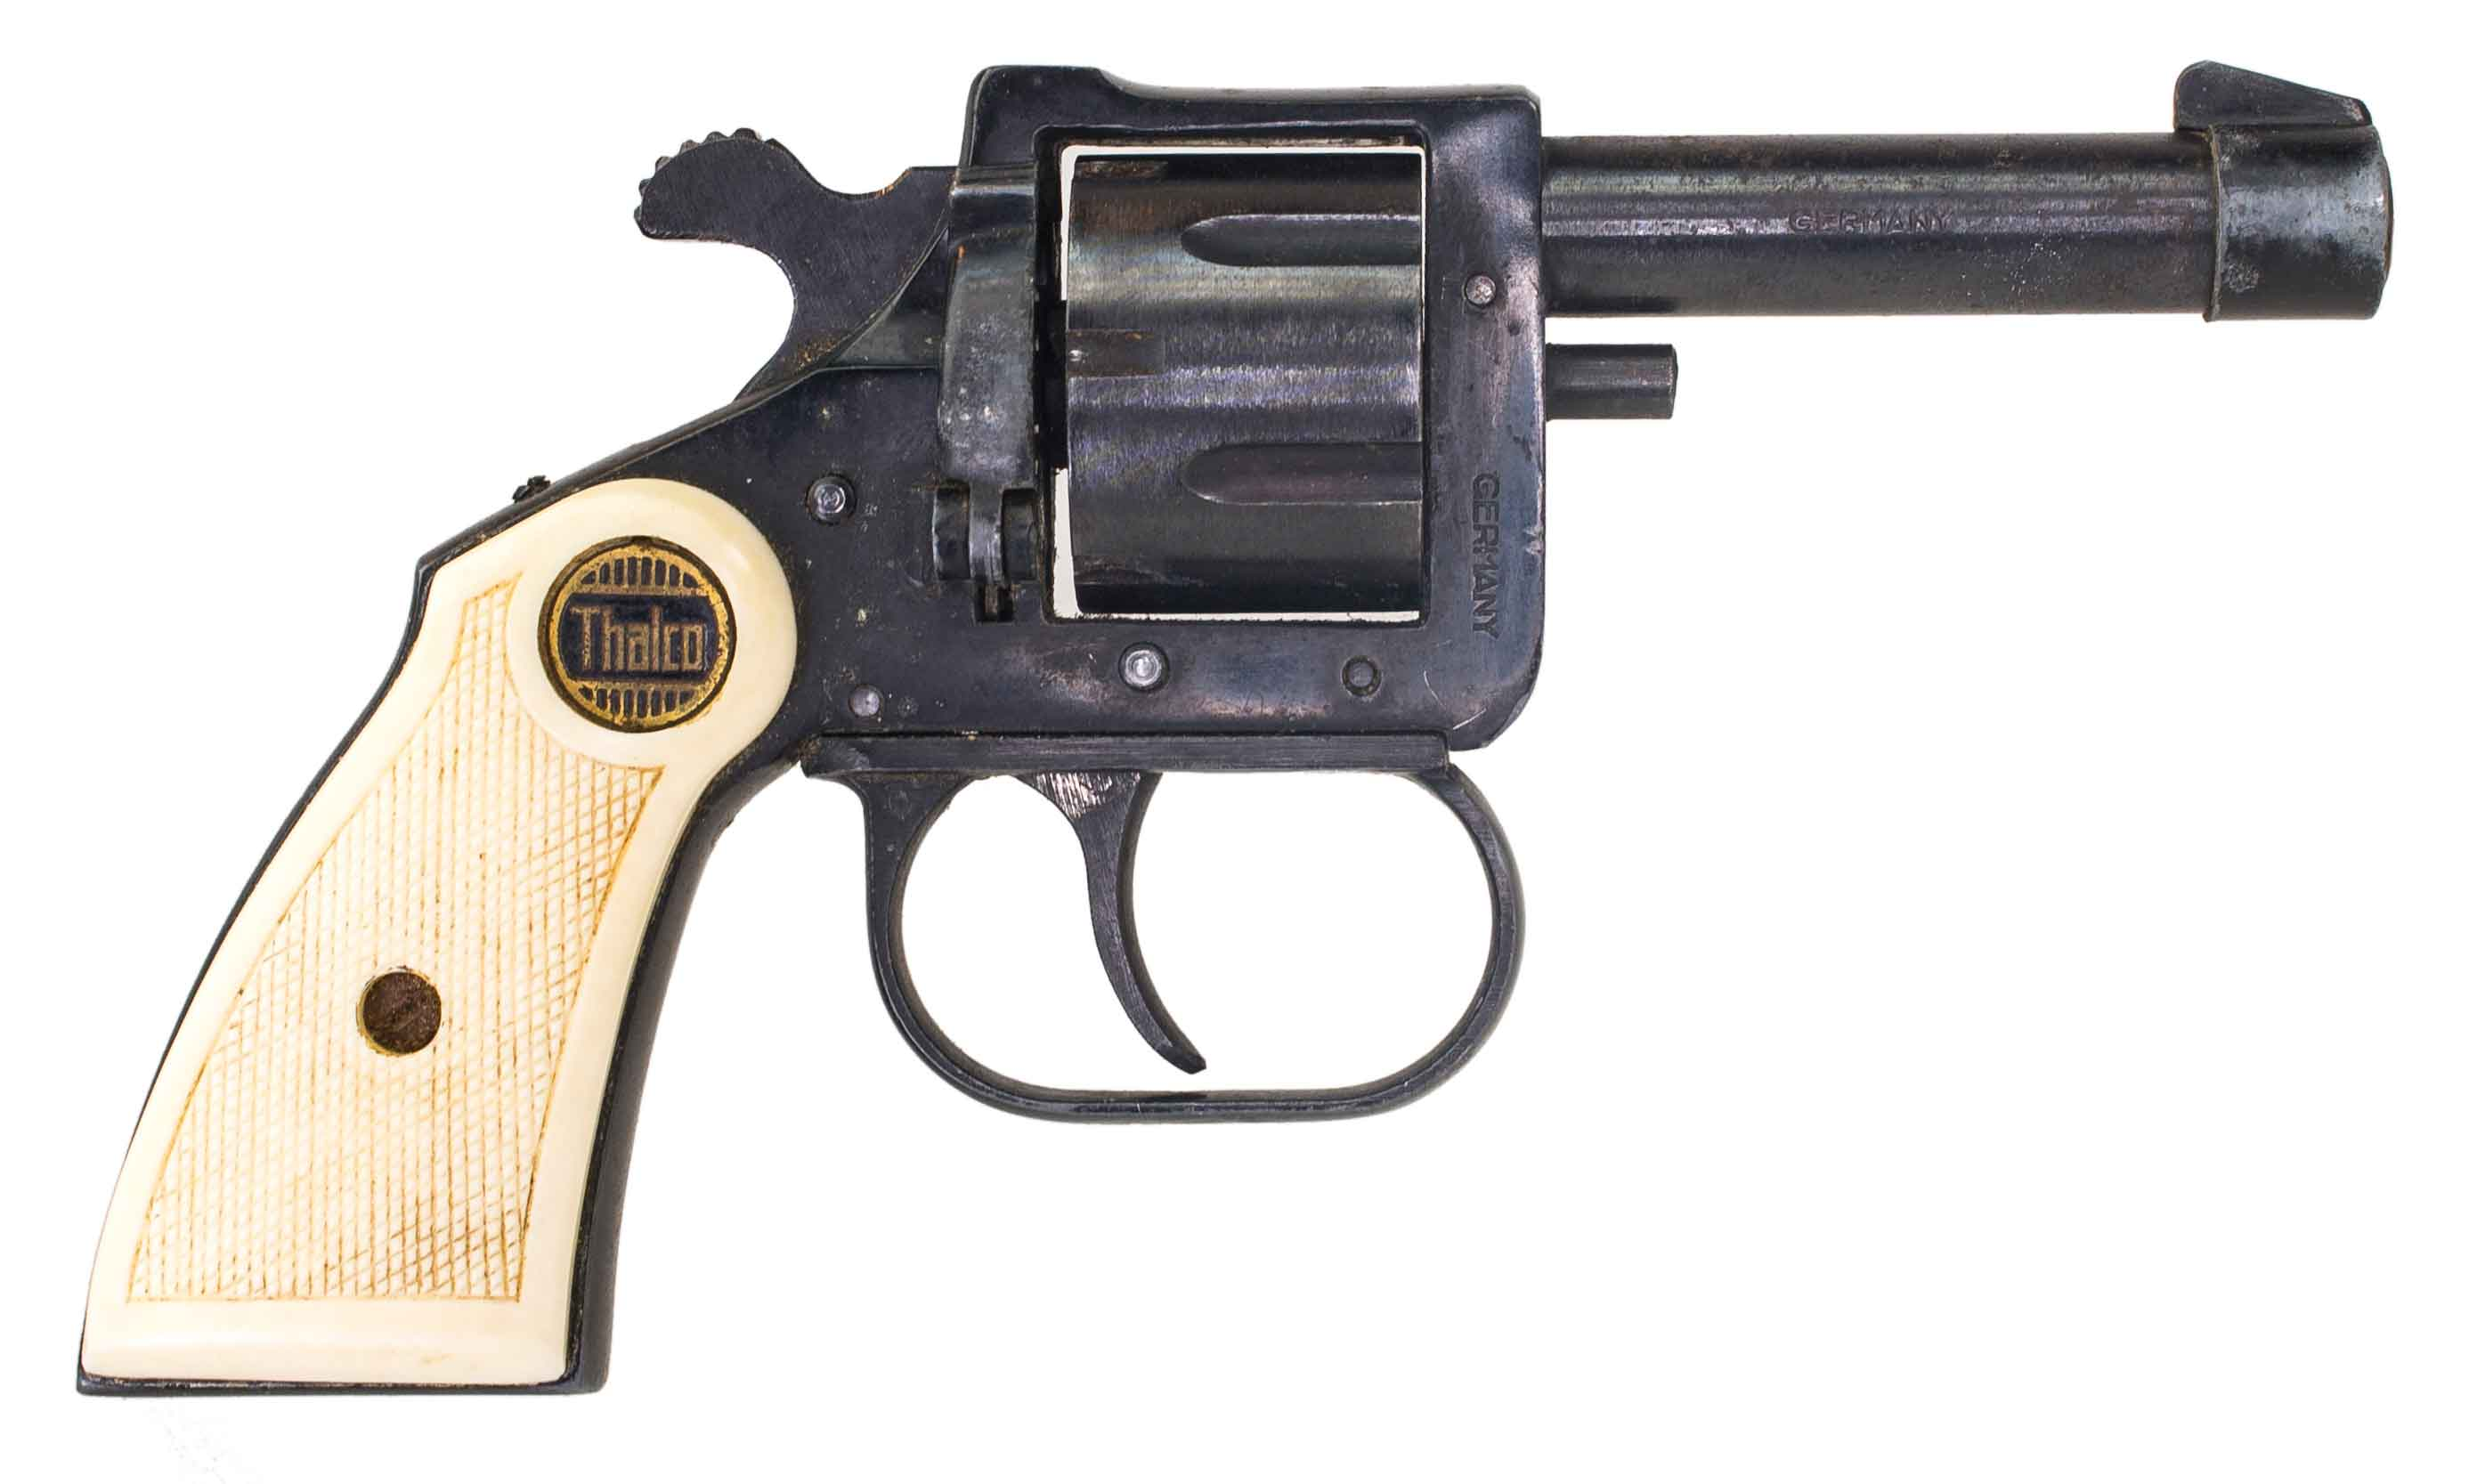 GERMAN REVOLVER 22LR (Auction ID: 5938670, End Time : Nov  09, 2016